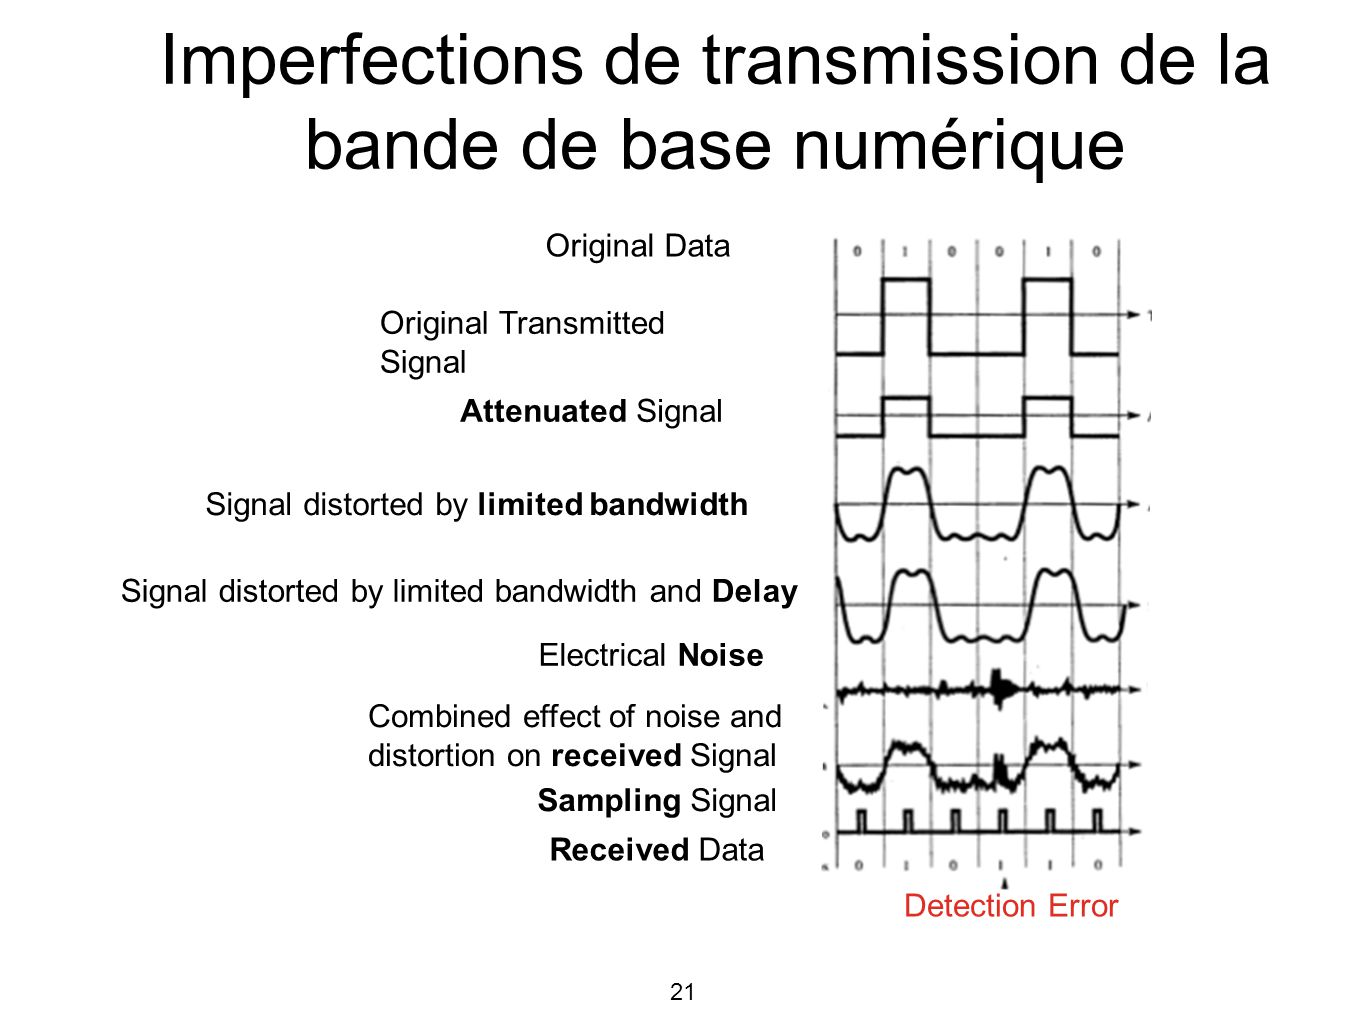 21 Original Data Original Transmitted Signal Attenuated Signal Signal distorted by limited bandwidth Signal distorted by limited bandwidth and Delay Electrical Noise Combined effect of noise and distortion on received Signal Sampling Signal Received Data Detection Error Imperfections de transmission de la bande de base numérique